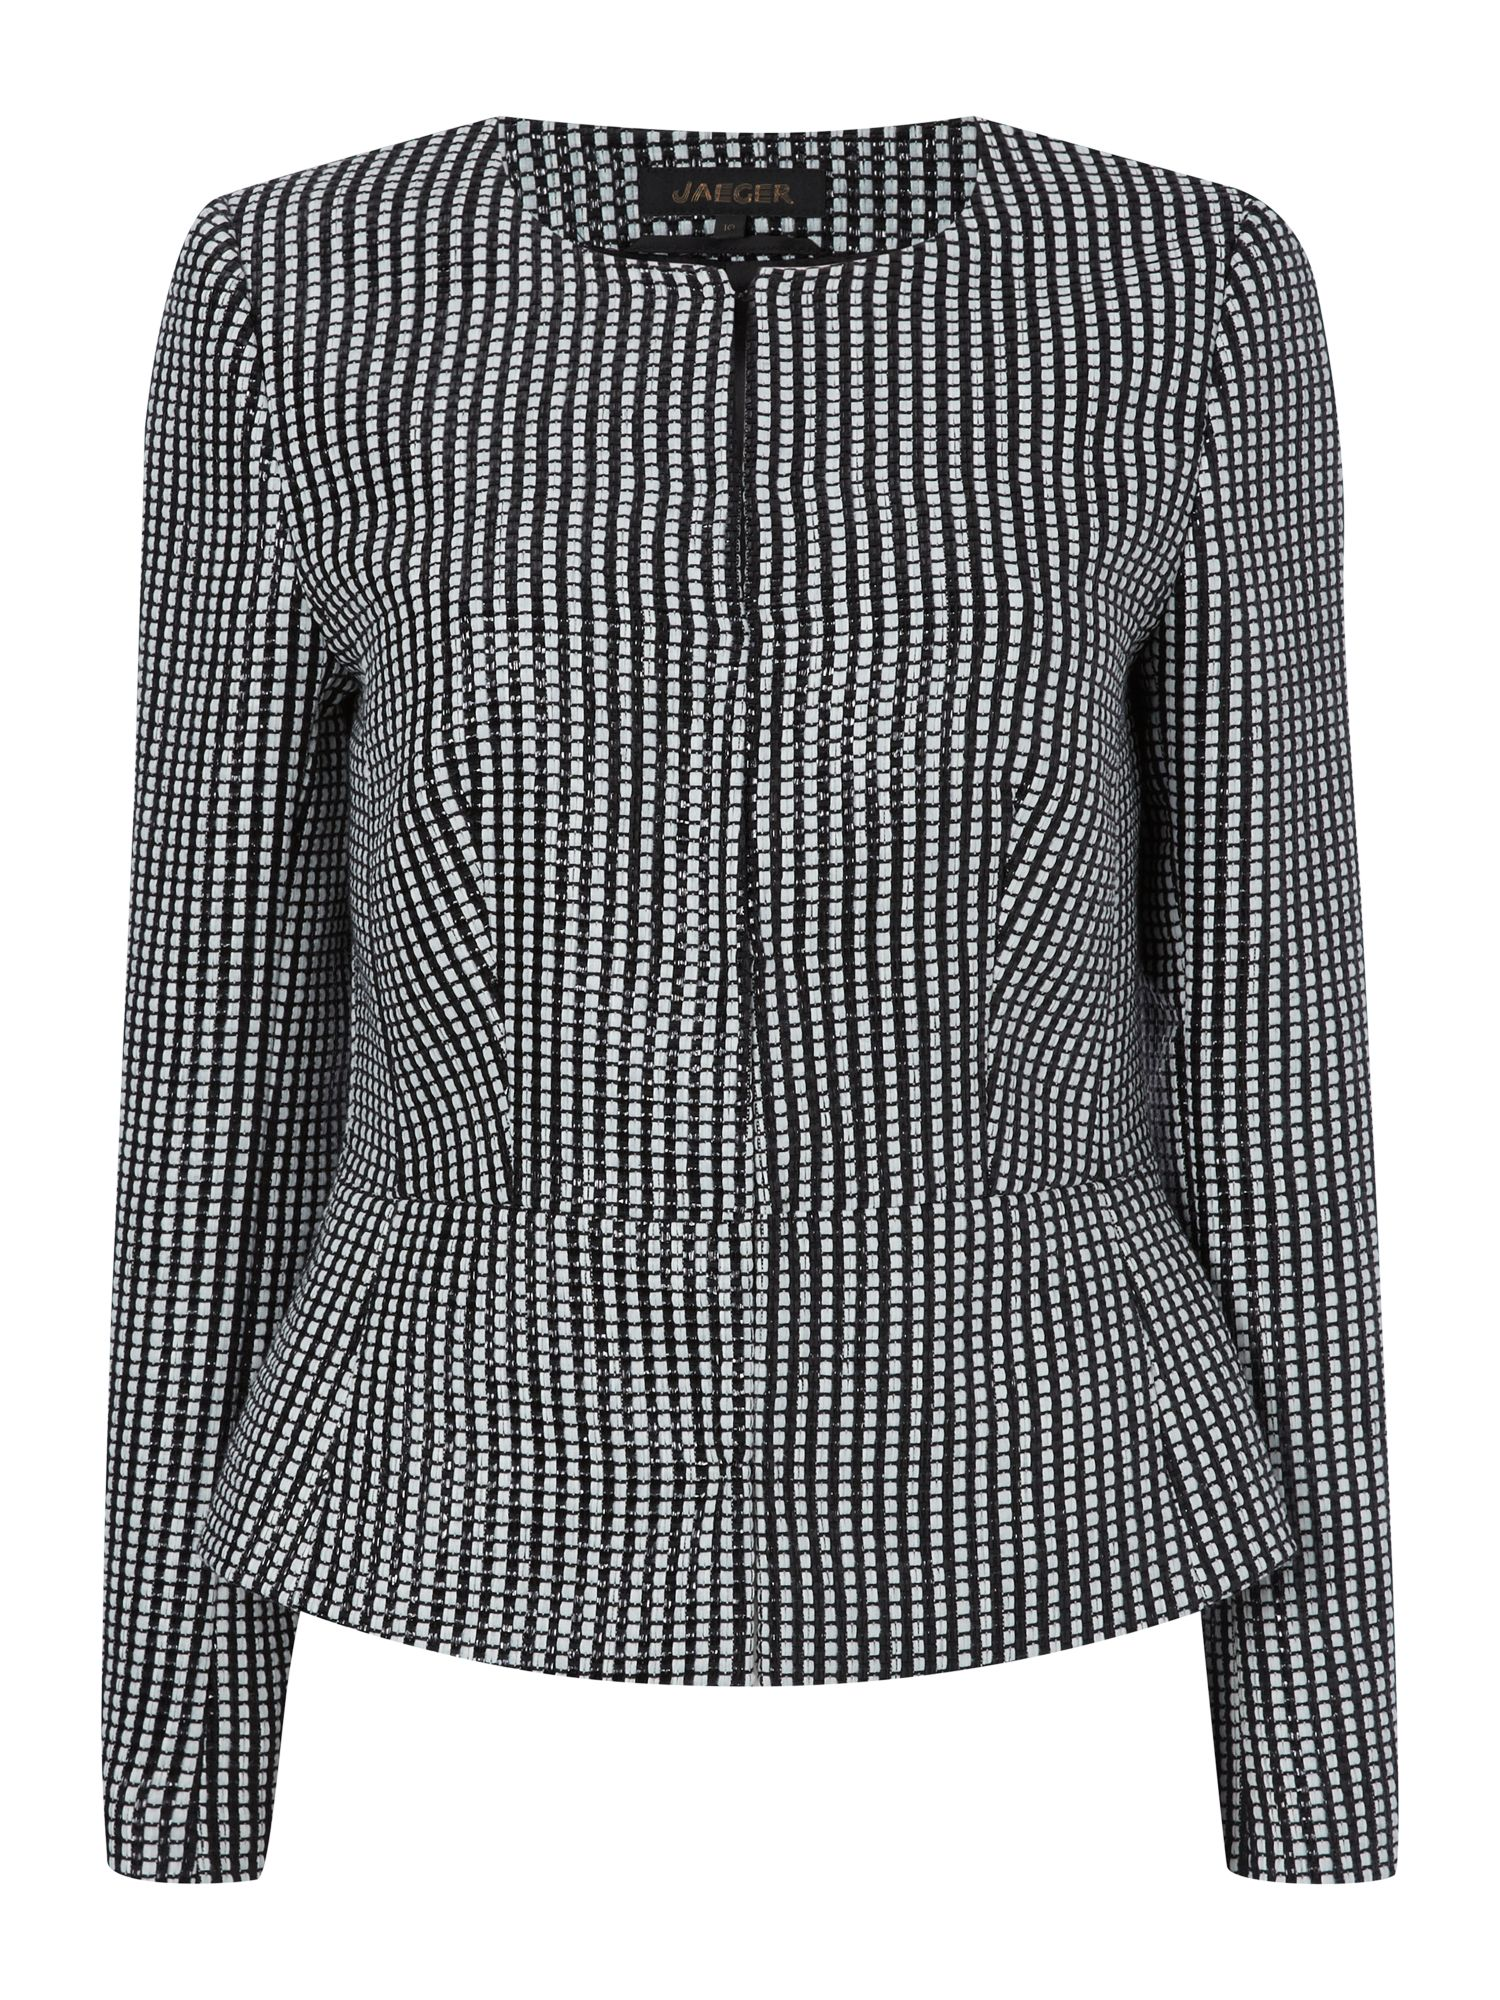 Graphic square jacket